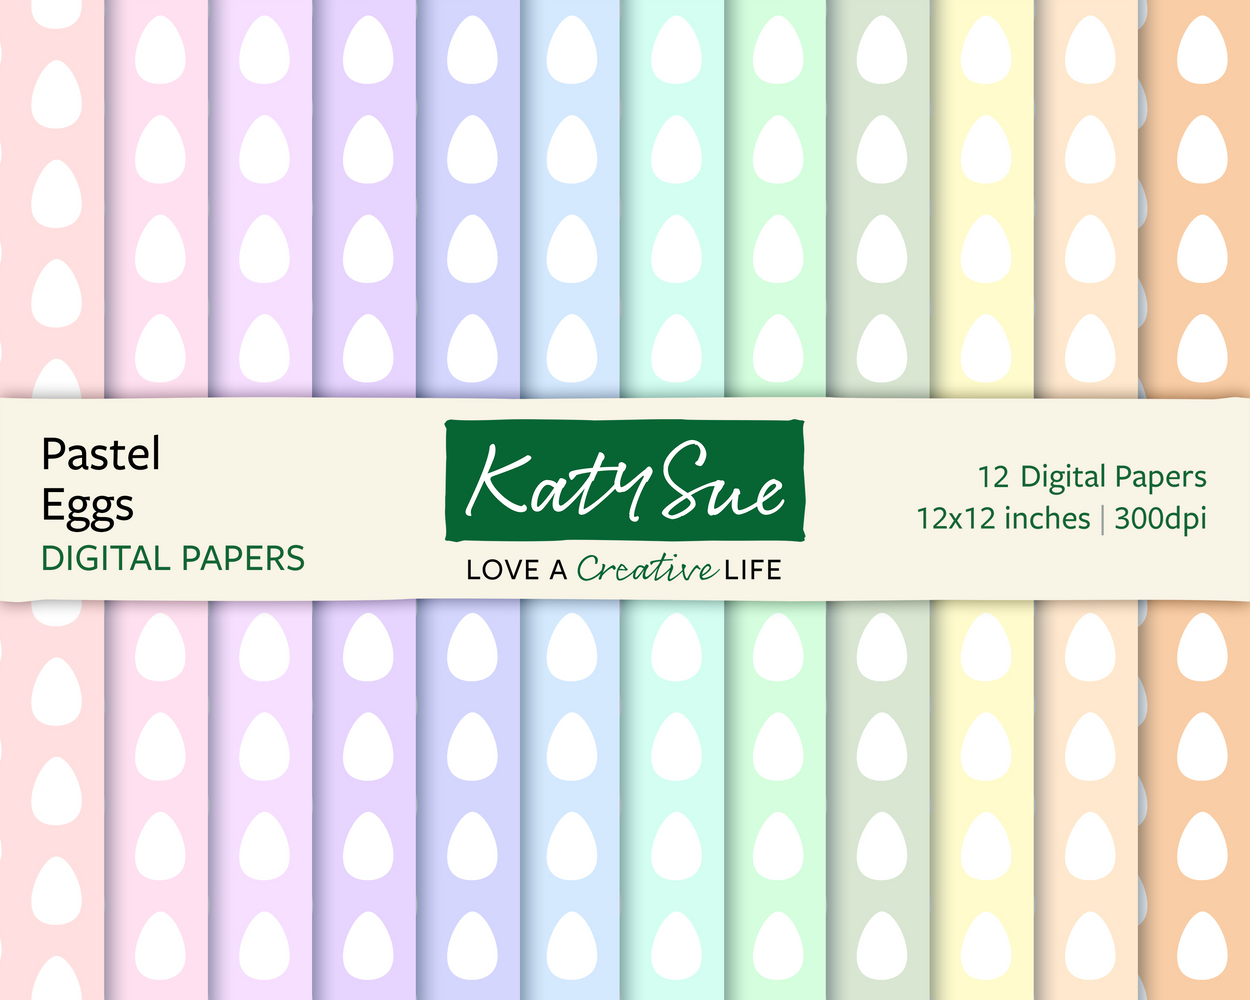 Pastel Eggs | 12x12 Digital Papers